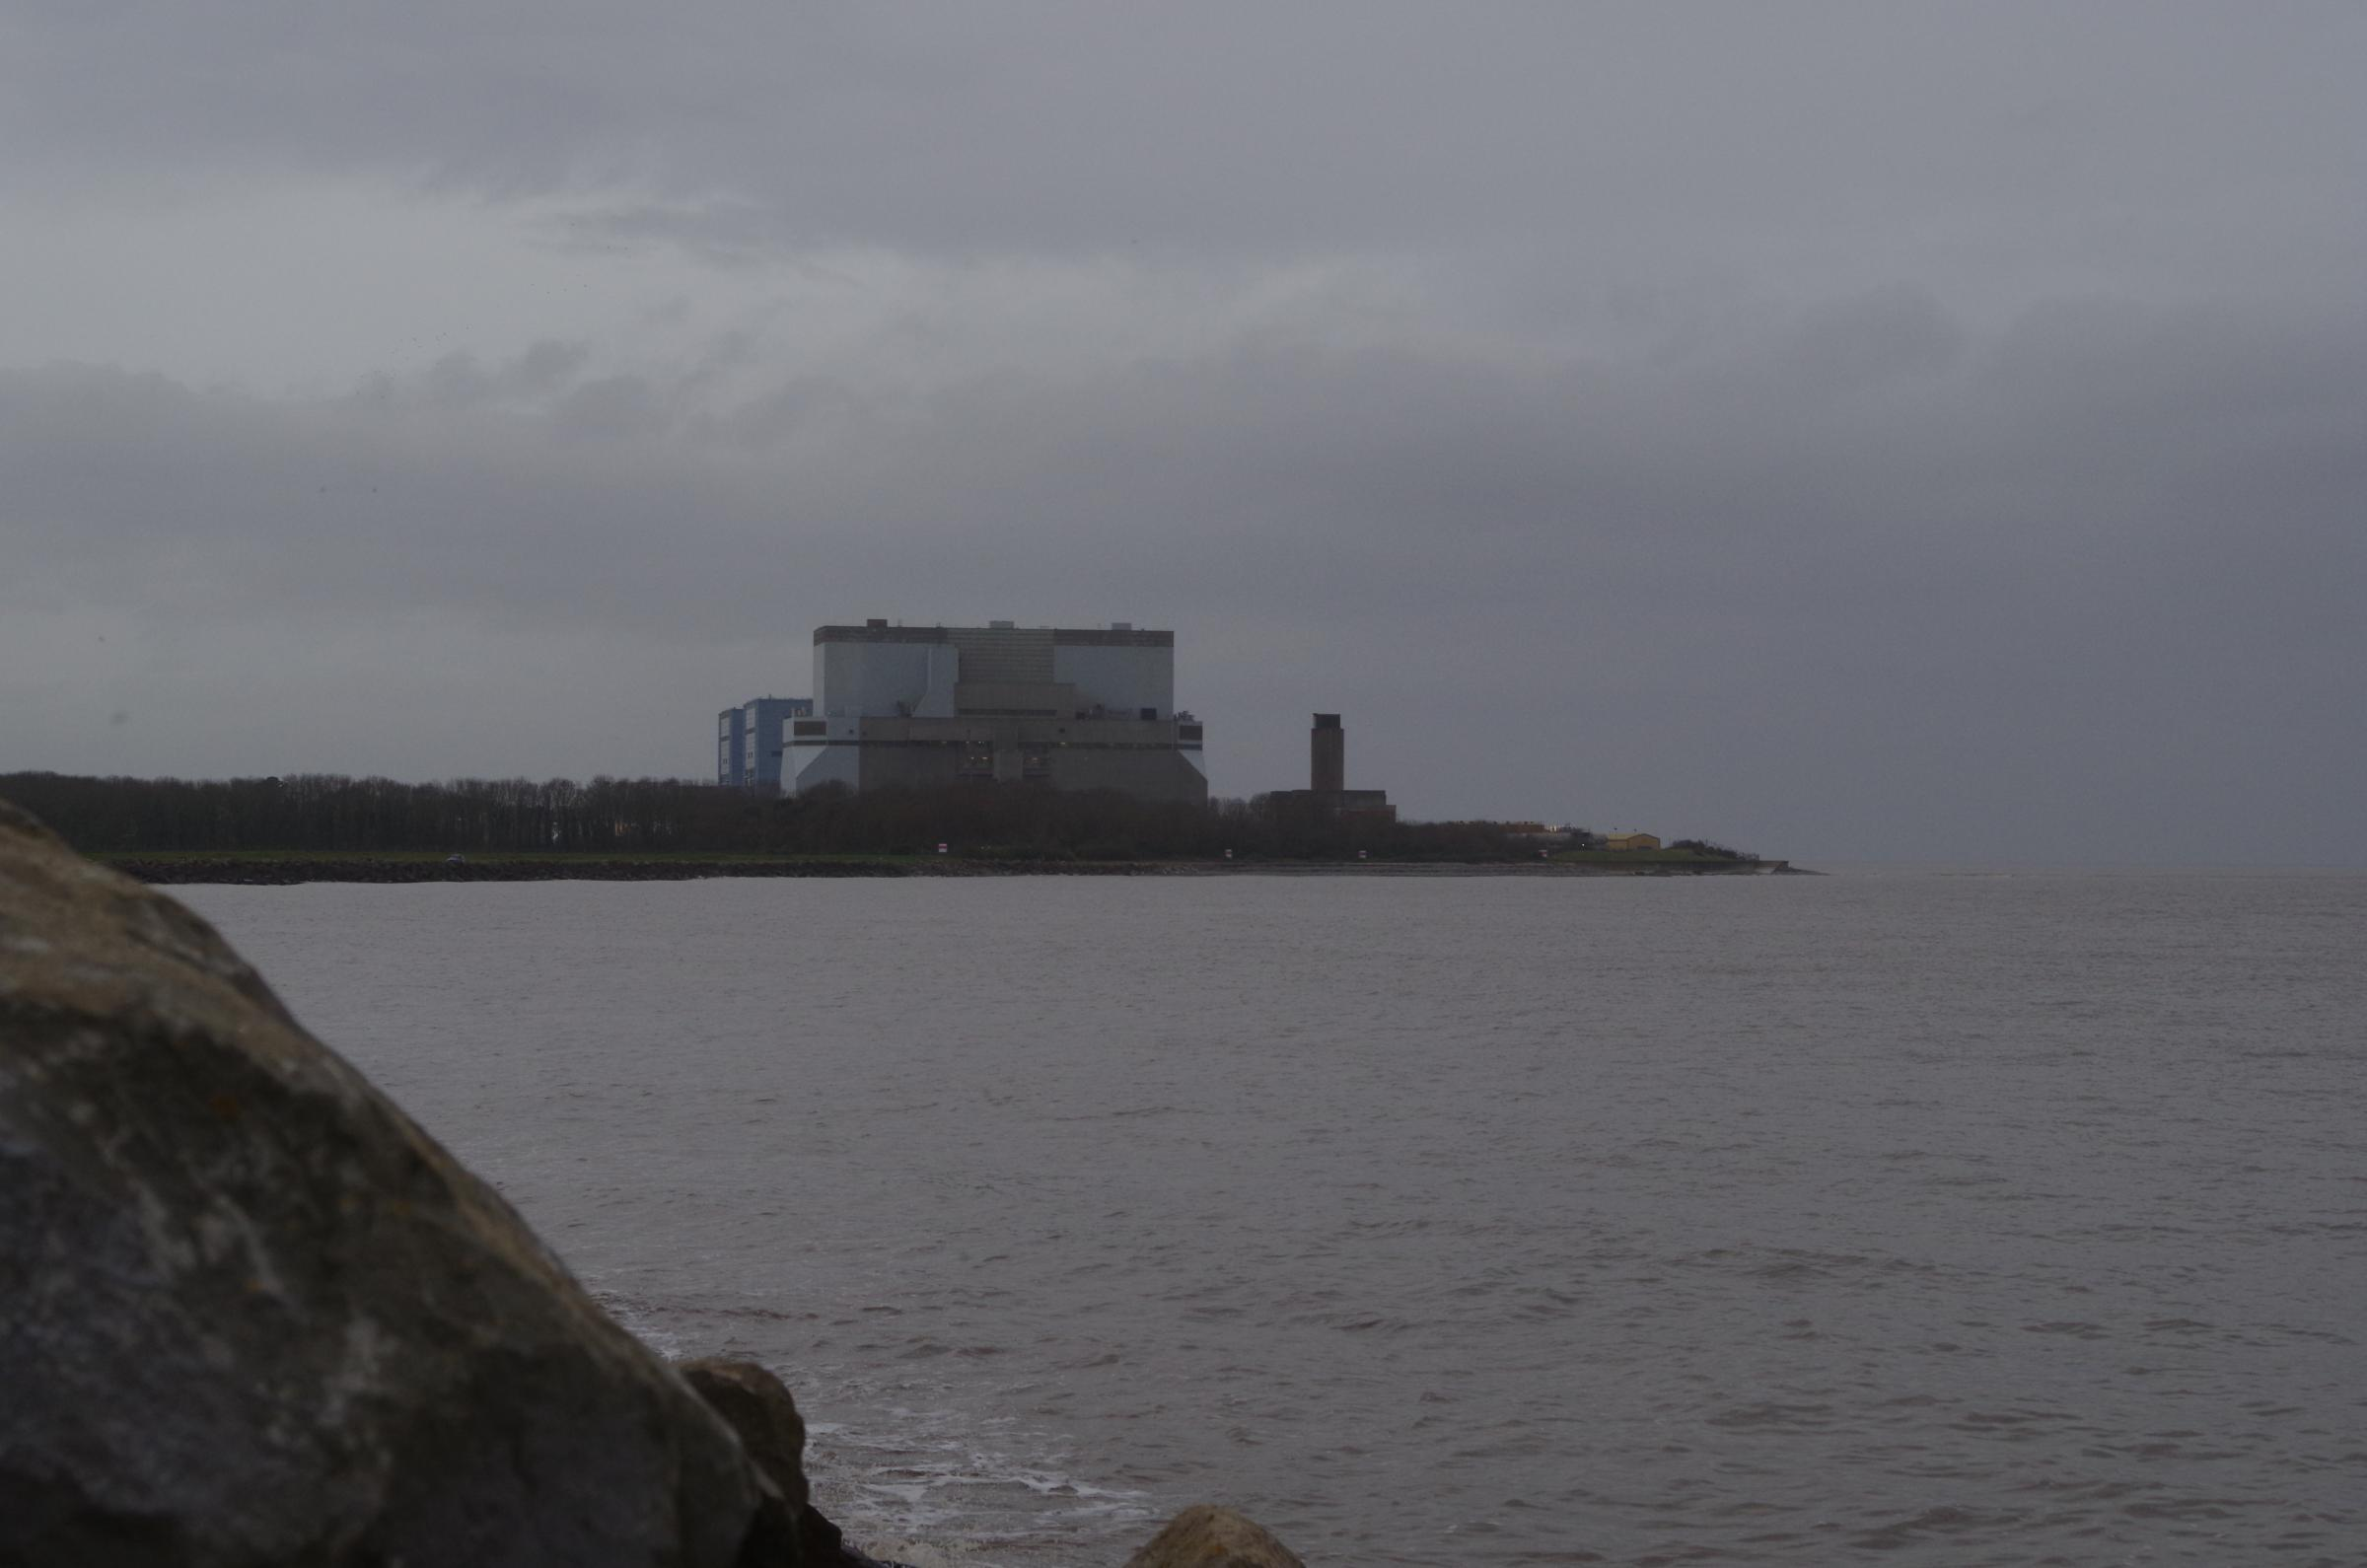 Hinkley C is planned to be build alongside the existing power plant